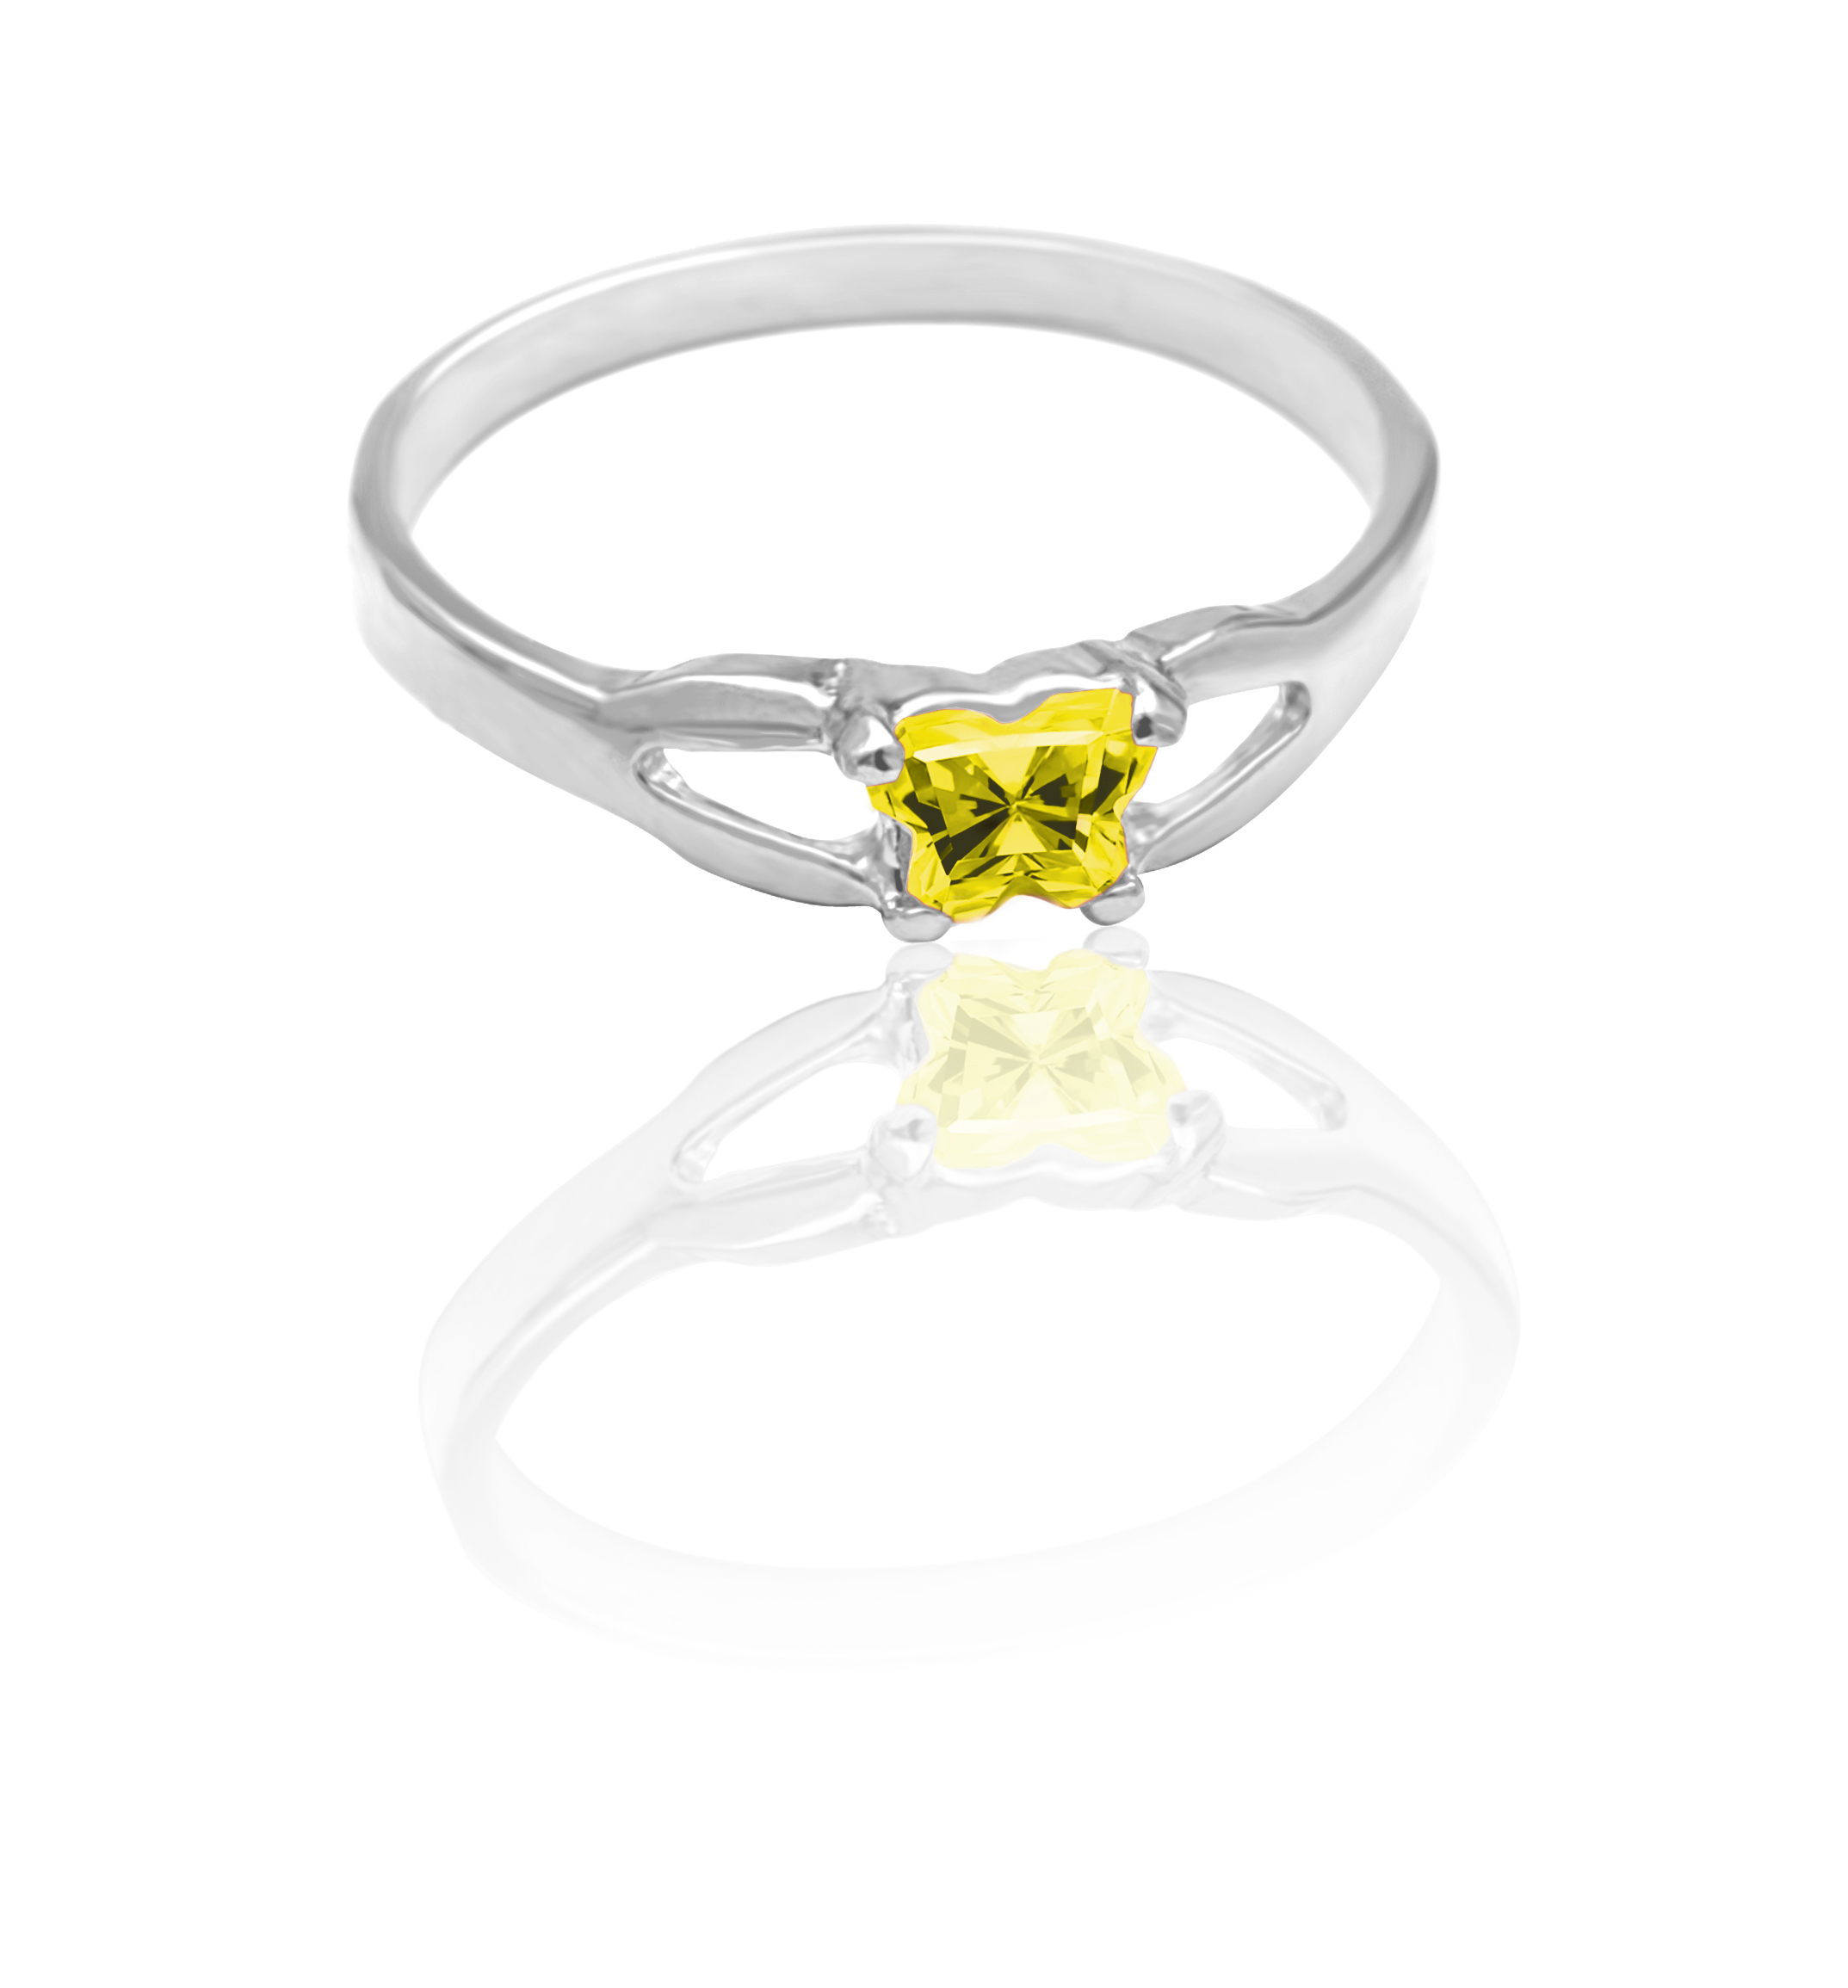 children ring in sterling silver with yellow cubic zirconia (month of November)*